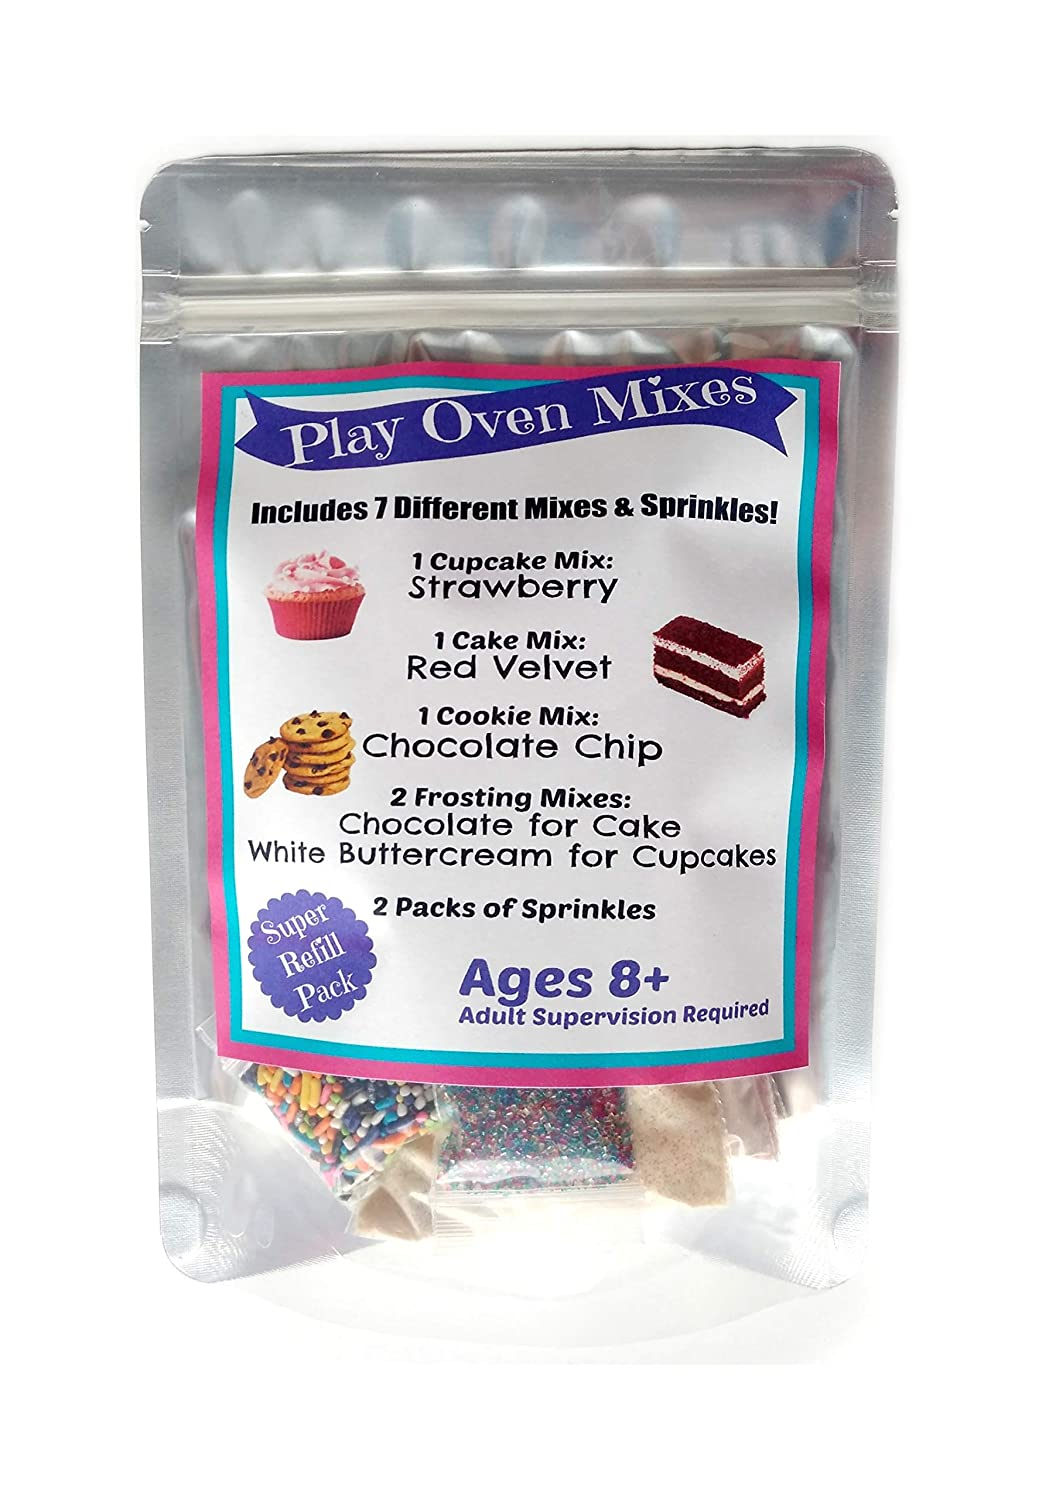 Children's Easy to Bake Oven Mixes Play Toy Oven Real 7 Mixes Mega Refill Kit Strawberry Cupcakes Red Velvet Cake Frosting Sprinkles Ultimate Set Cooking Baking Supplies Super Pack Net Wt 6.2 oz